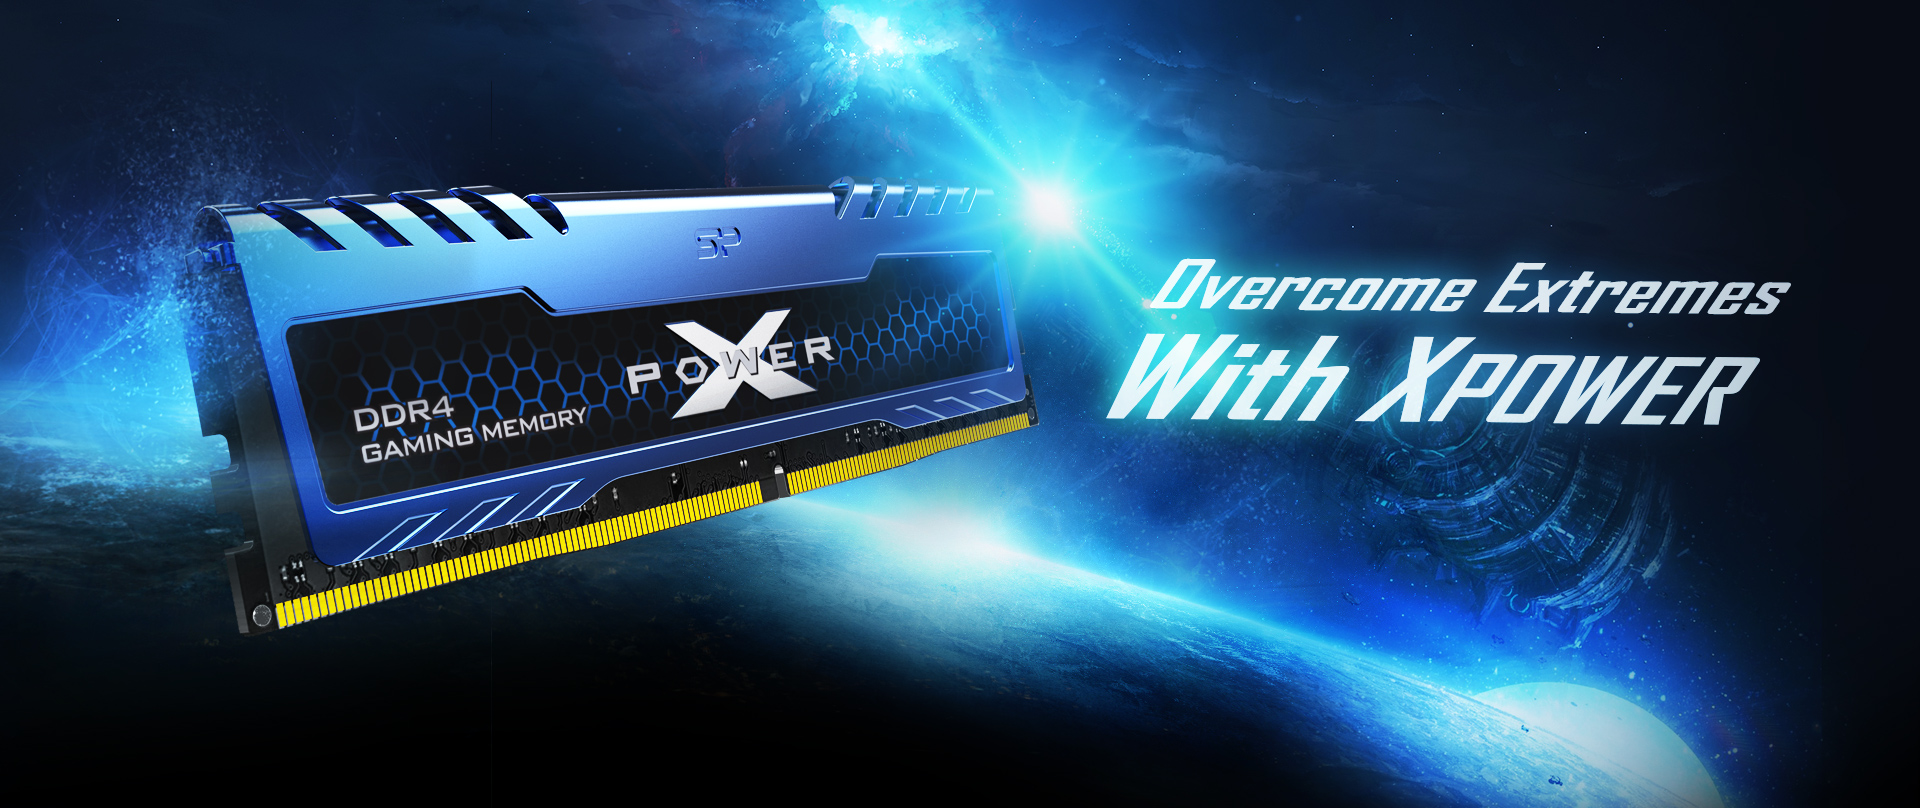 https://www.silicon-power.com/web/product-XPOWER_Turbine_DDR4_Gaming_UDIMM